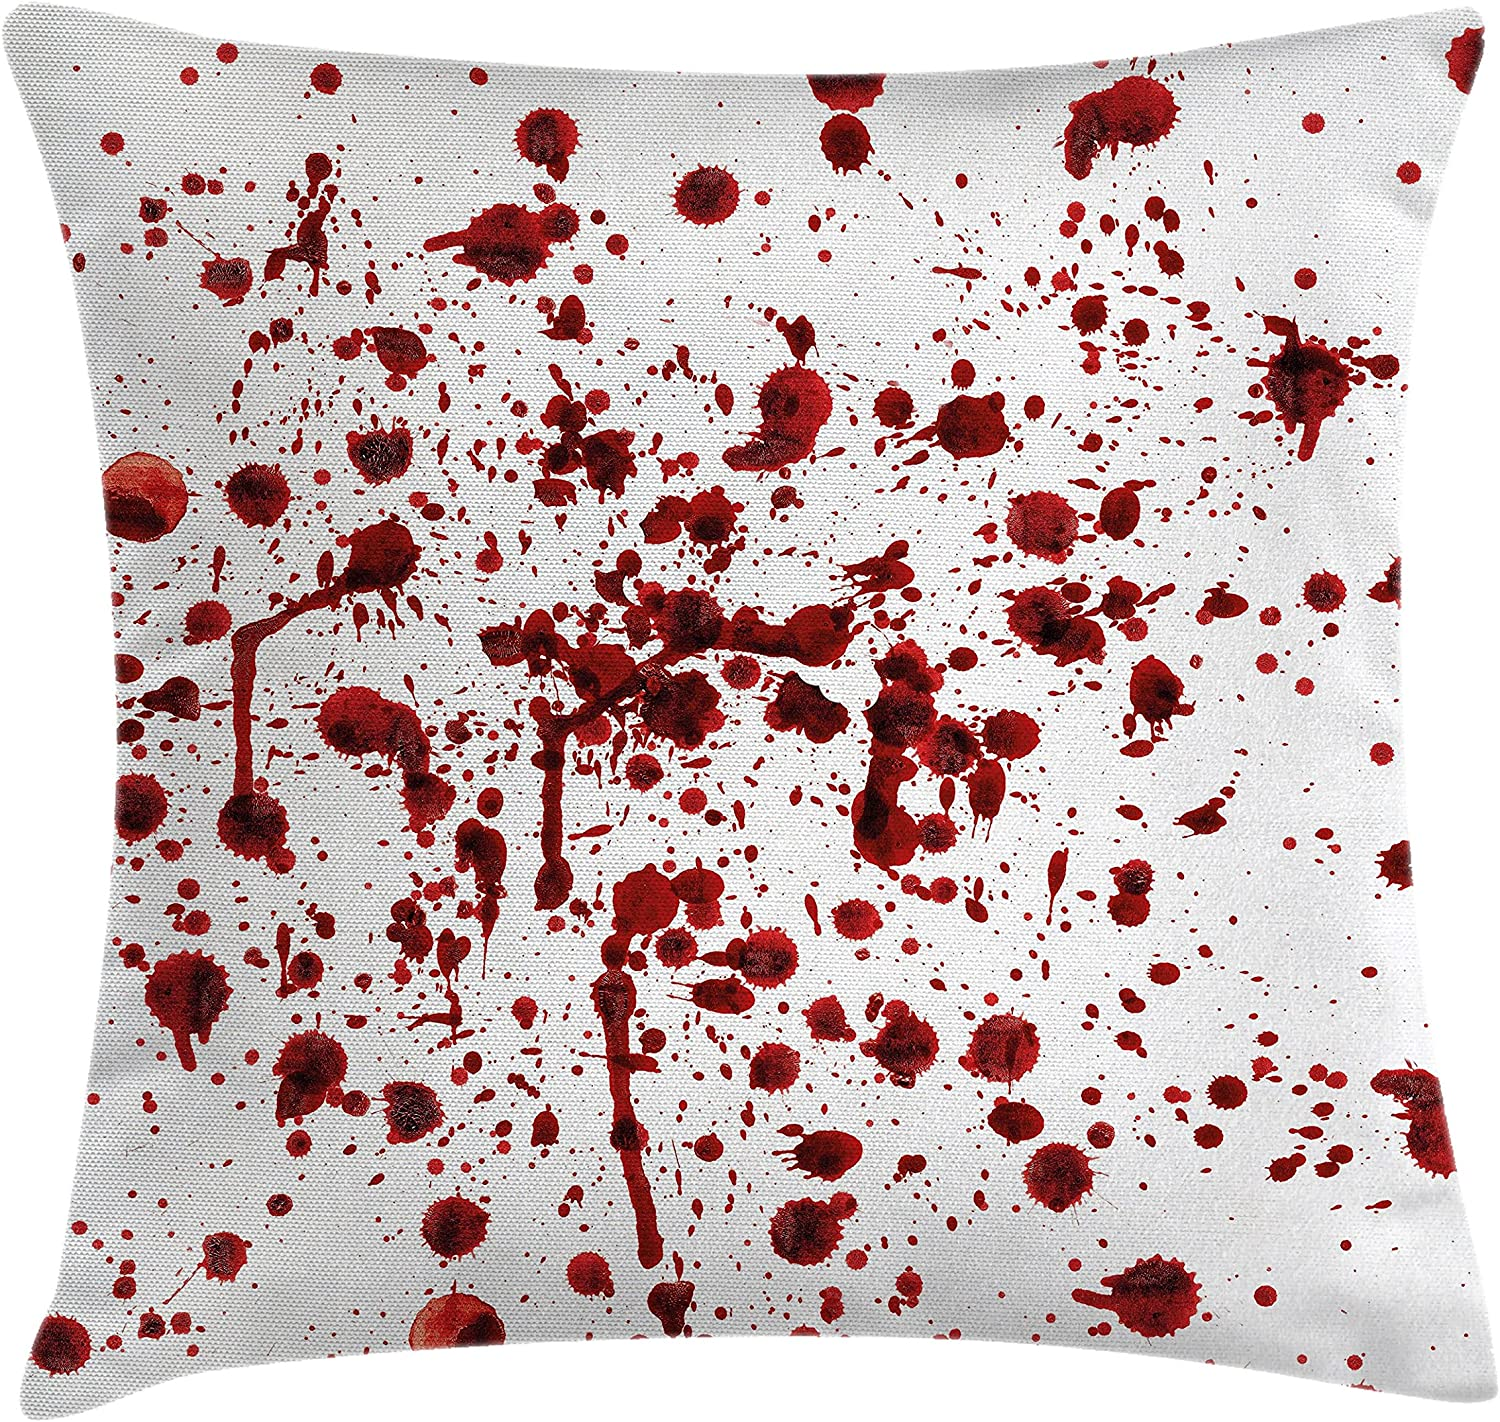 "Ambesonne Horror Throw Pillow Cushion Cover, Splashes of Blood Grunge Style Bloodstain Horror Scary Zombie Halloween Themed Print, Decorative Square Accent Pillow Case, 20"" X 20"", Red White"